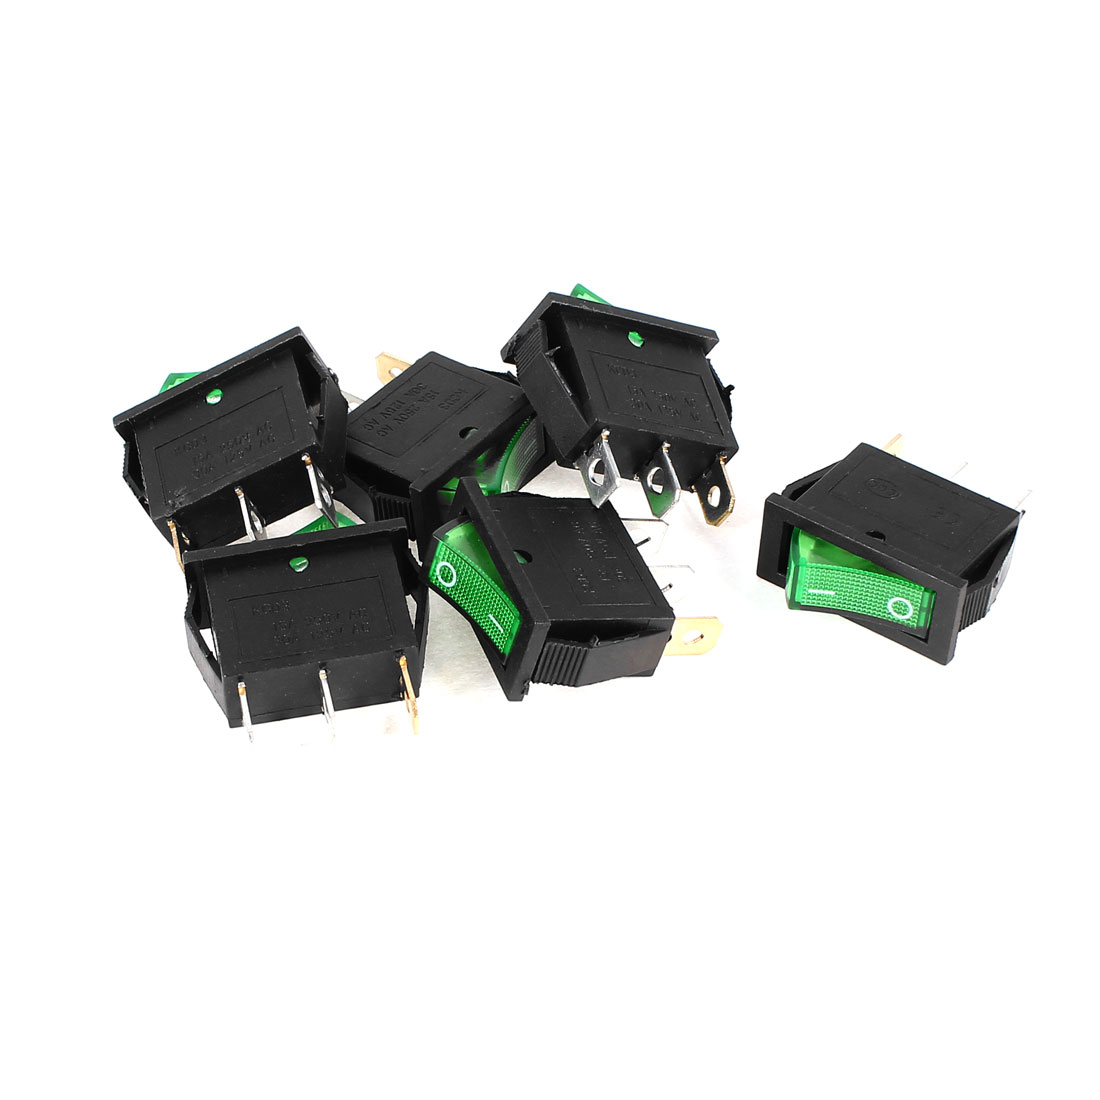 6 Pcs KCD3 3Pin 2Position SPST On/Off Green Light Snap in Panel Mount Rocker Switch AC 15A 250V